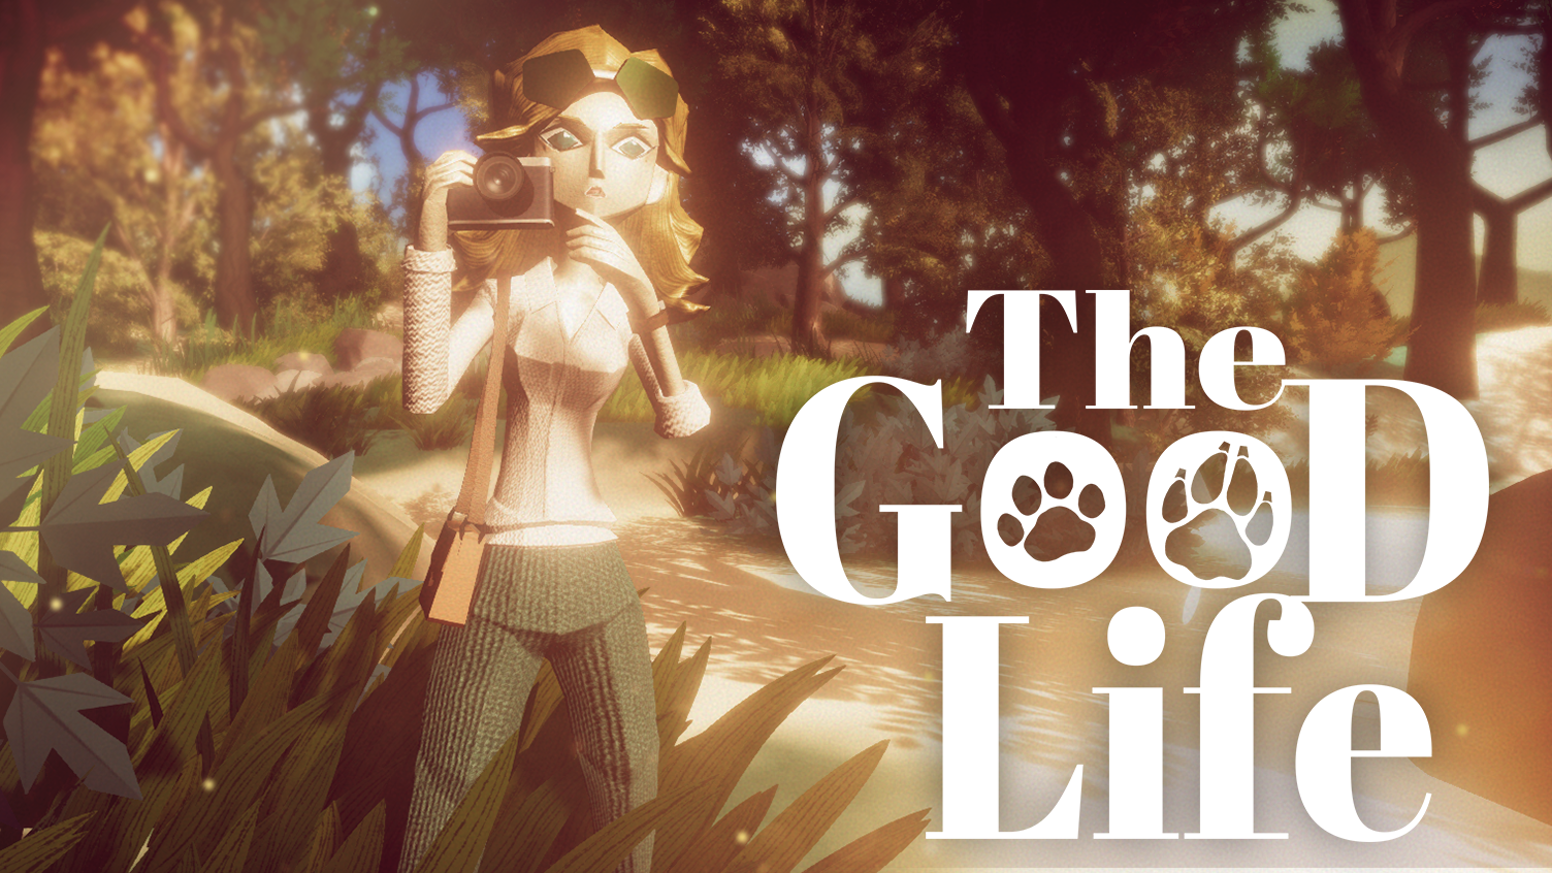 The Good Life is the top crowdfunding project launched today. The Good Life raised over $81030744 from 12613 backers. Other top projects include Cardlax - Thinnest Electric Card Massager, Mischievous & Mellow Cat Pins, LOST IN TIME: A Fantasy Adventure Novel...